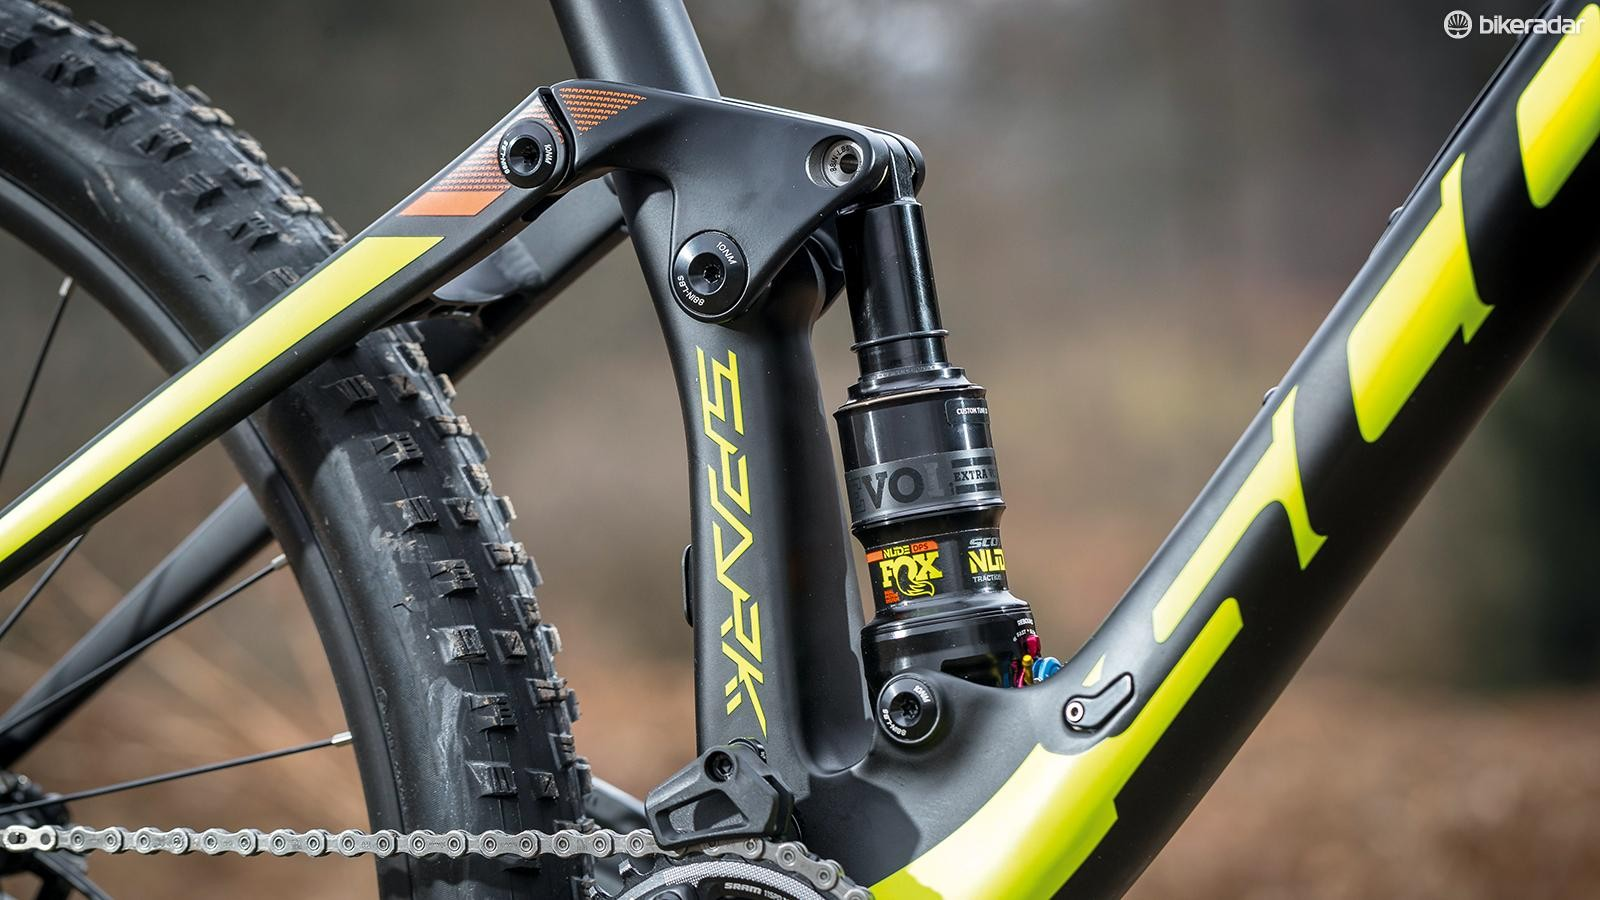 The Fox NUDE EVOL custom 120mm rear shock